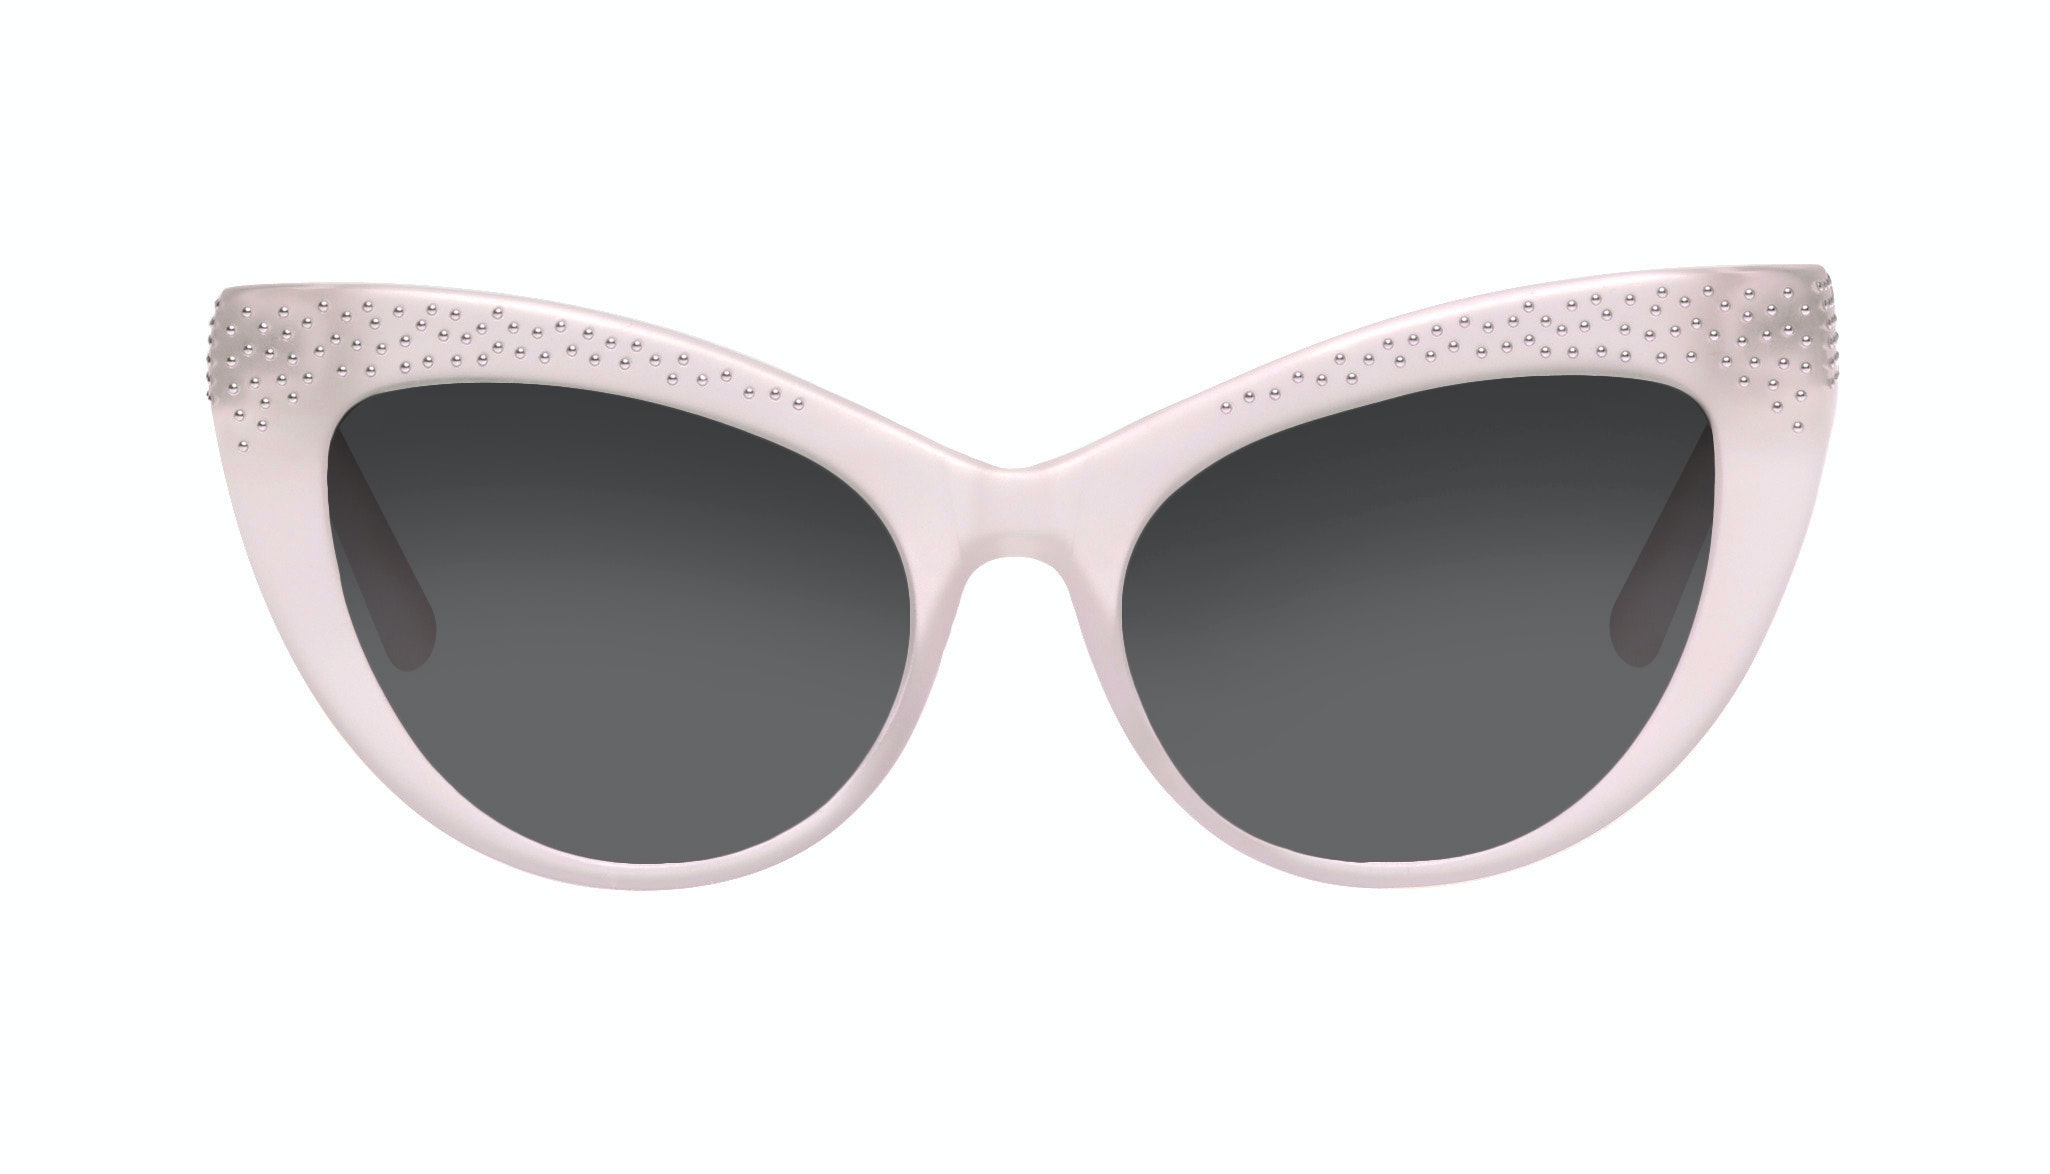 Affordable Fashion Glasses Cat Eye Sunglasses Women Keiko Barbie Pink